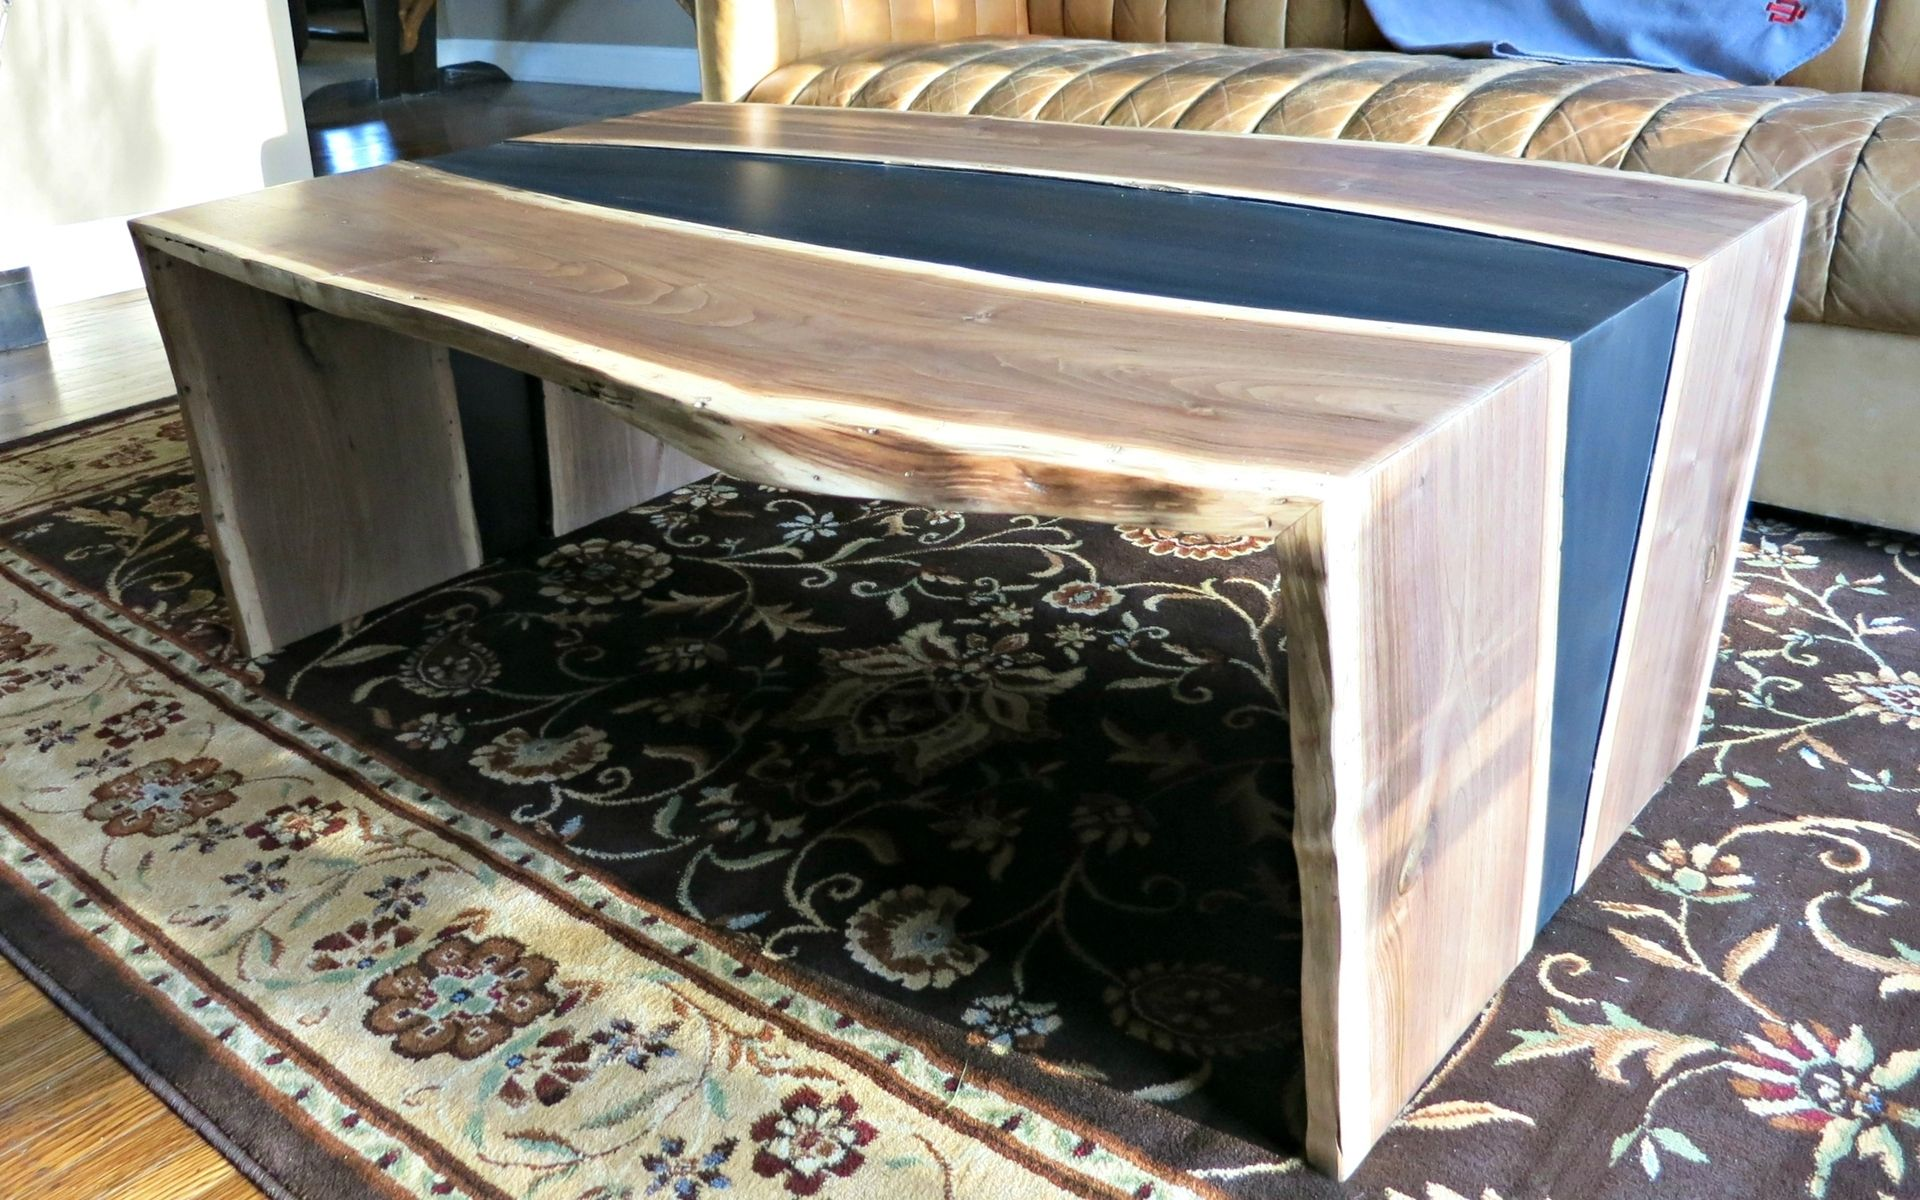 Hand Crafted Bookmatched Walnut Coffee Table by Donald Mee Designs